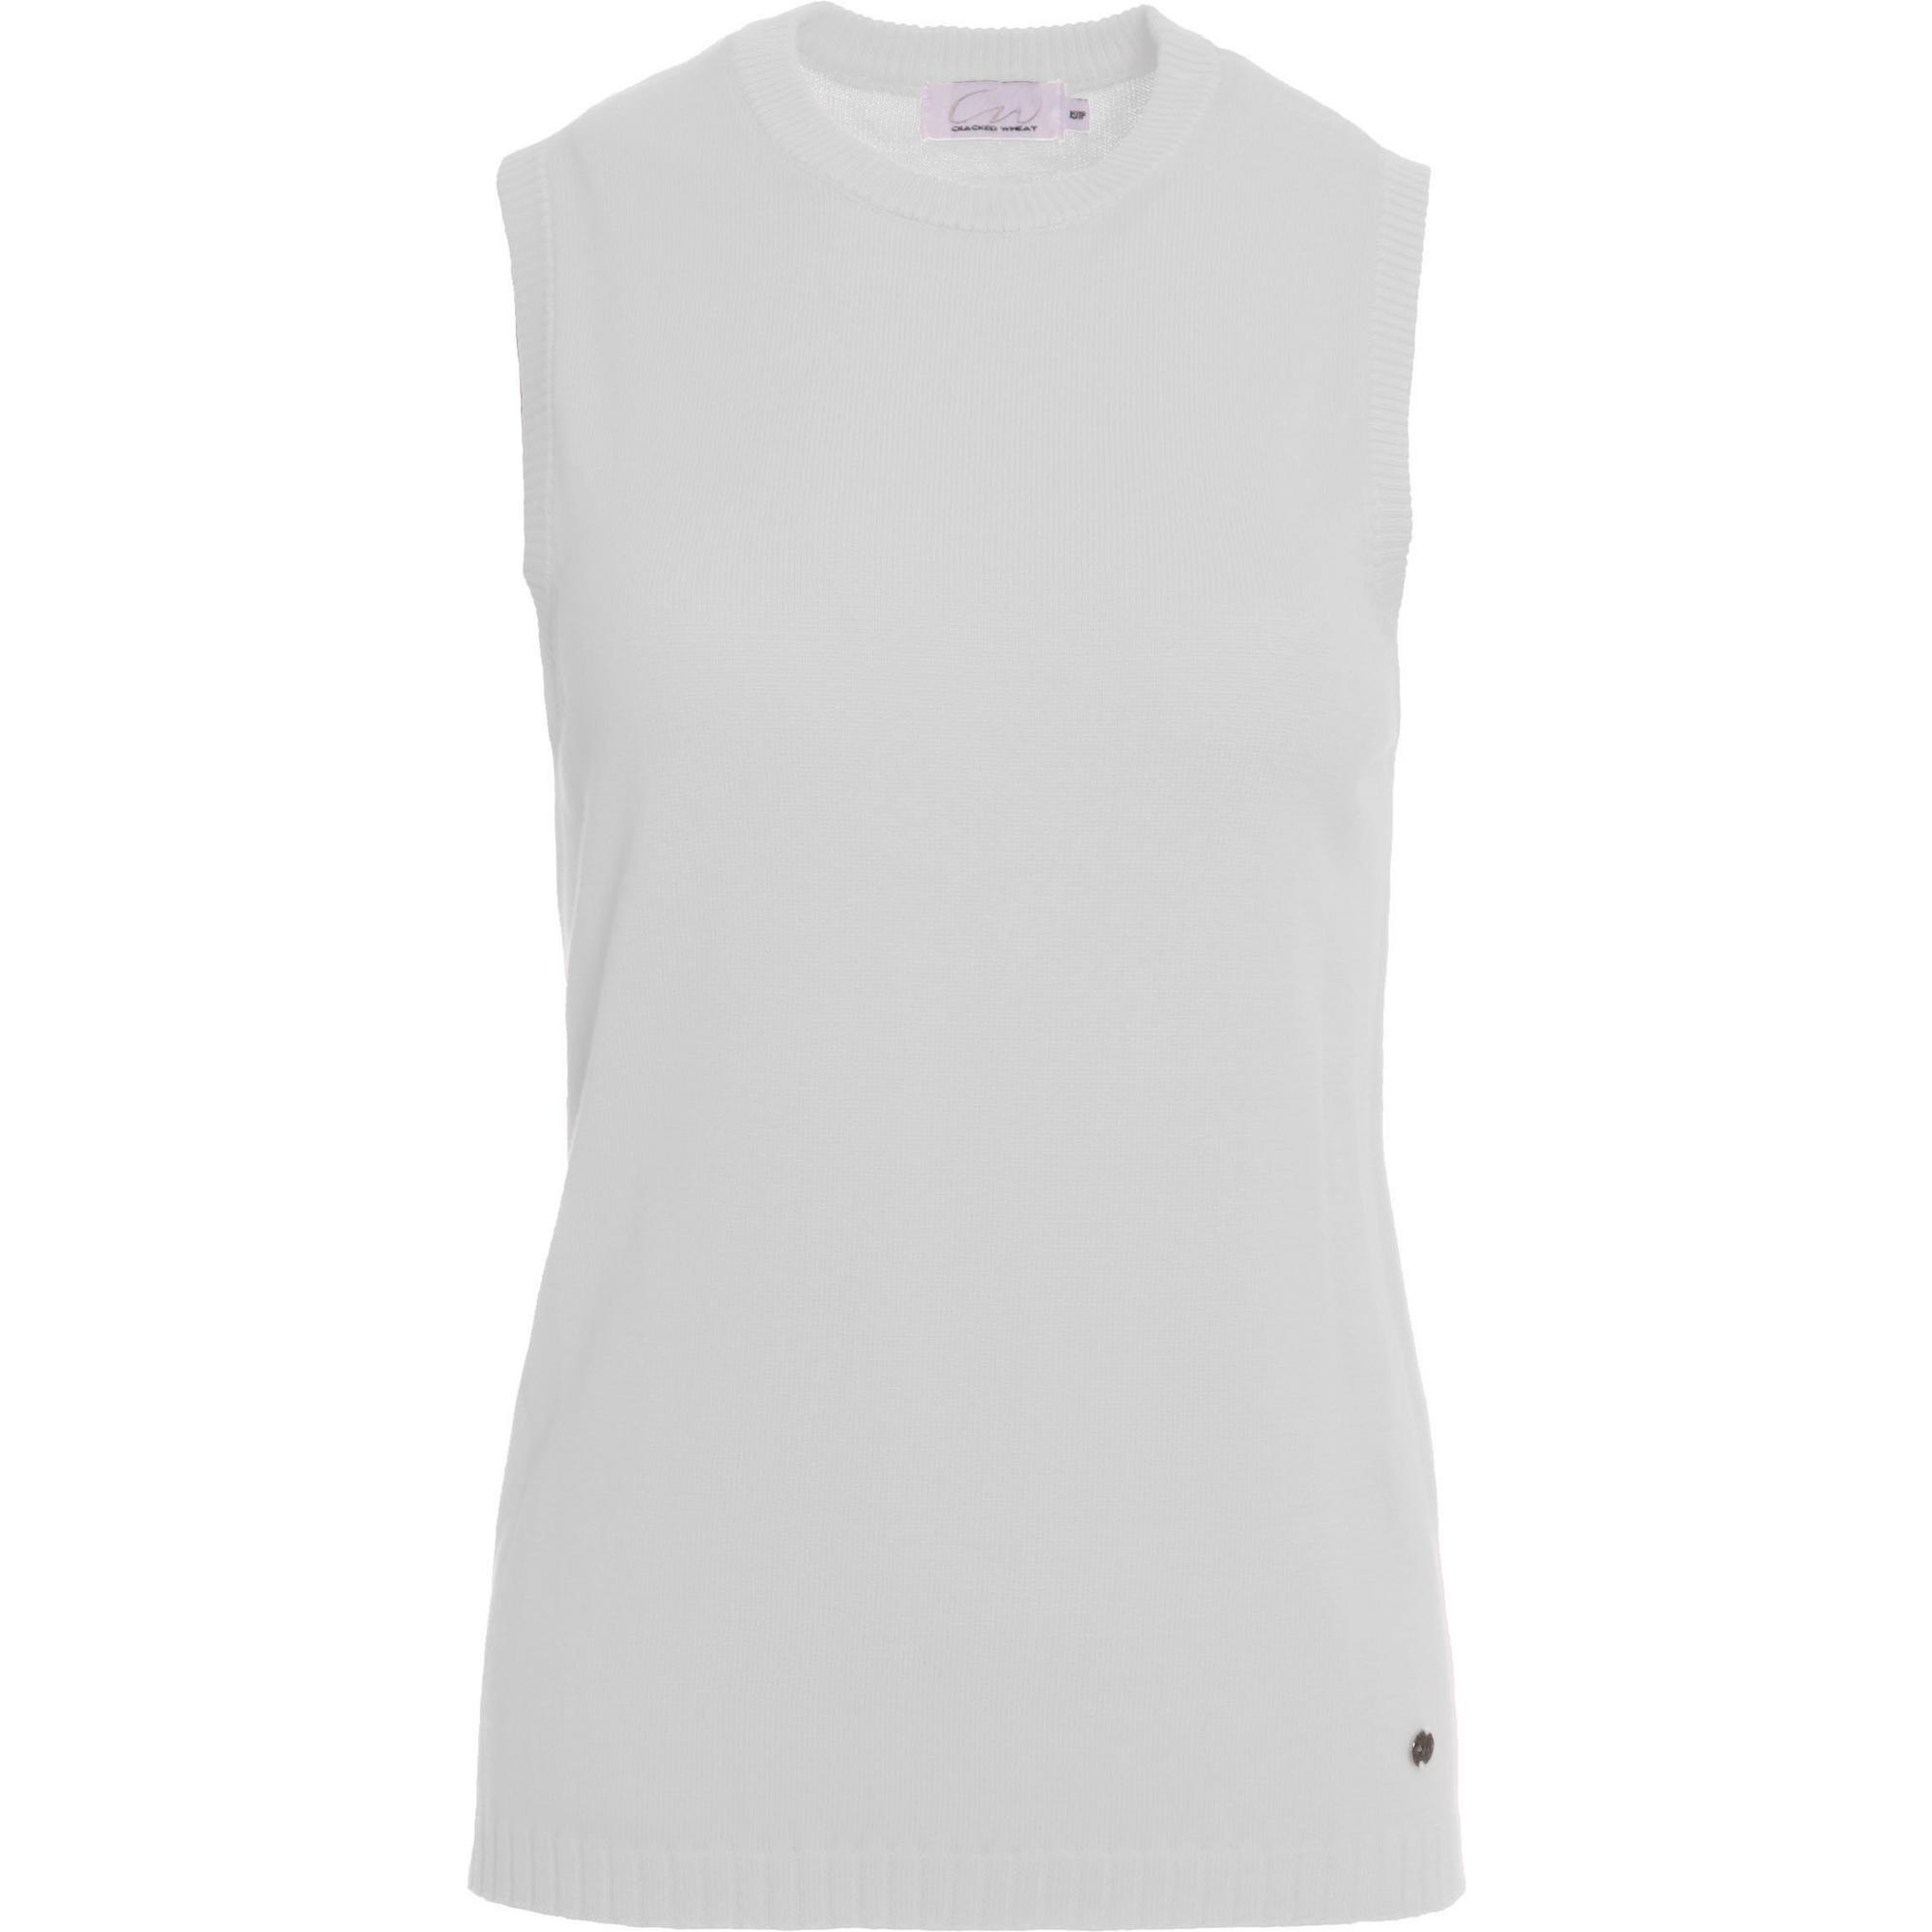 Women's Pearl Sleeveless Knit Top